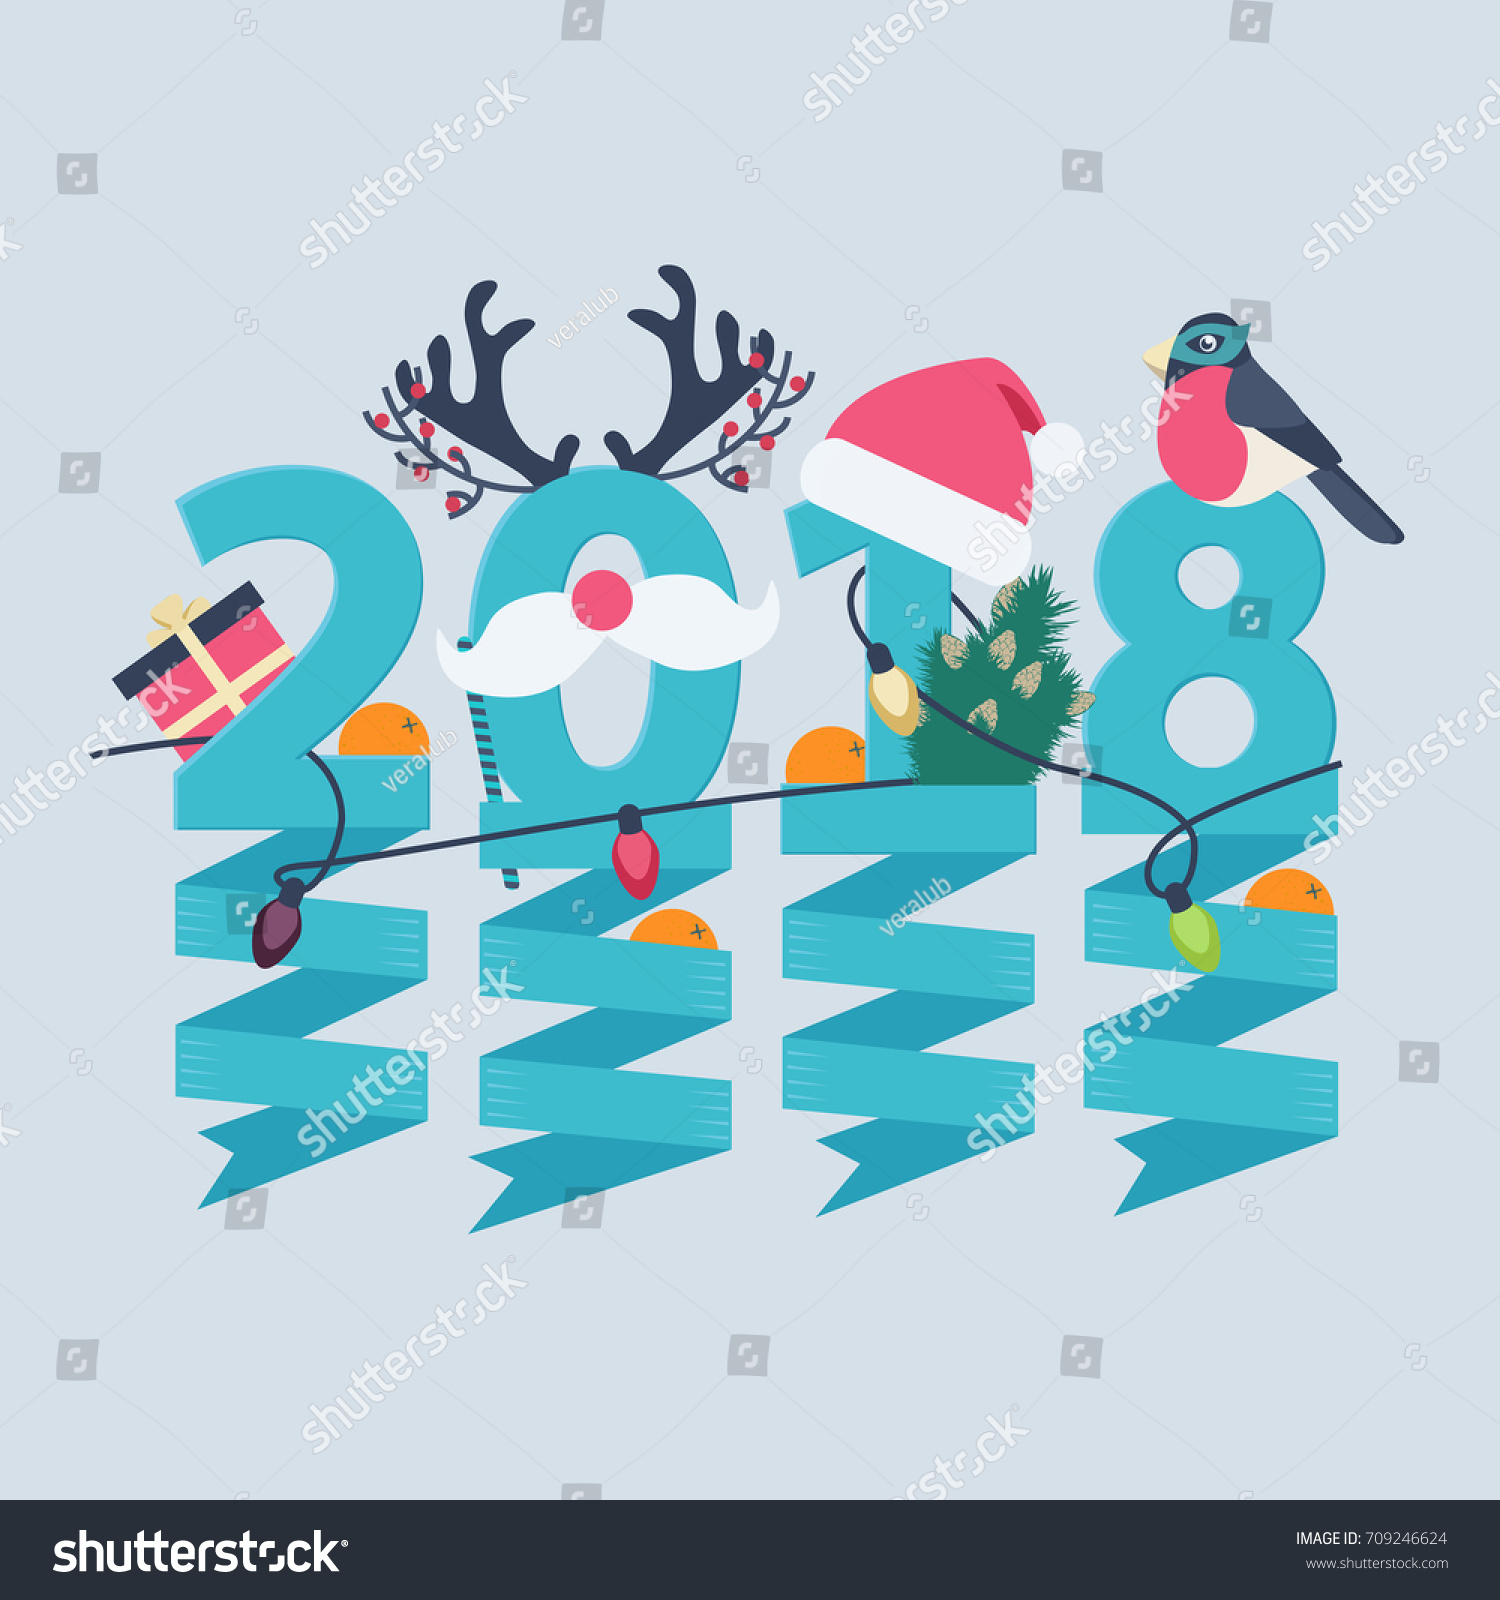 2018 new year greeting card design with party streamers hanging from blue numerals decorated with christmas